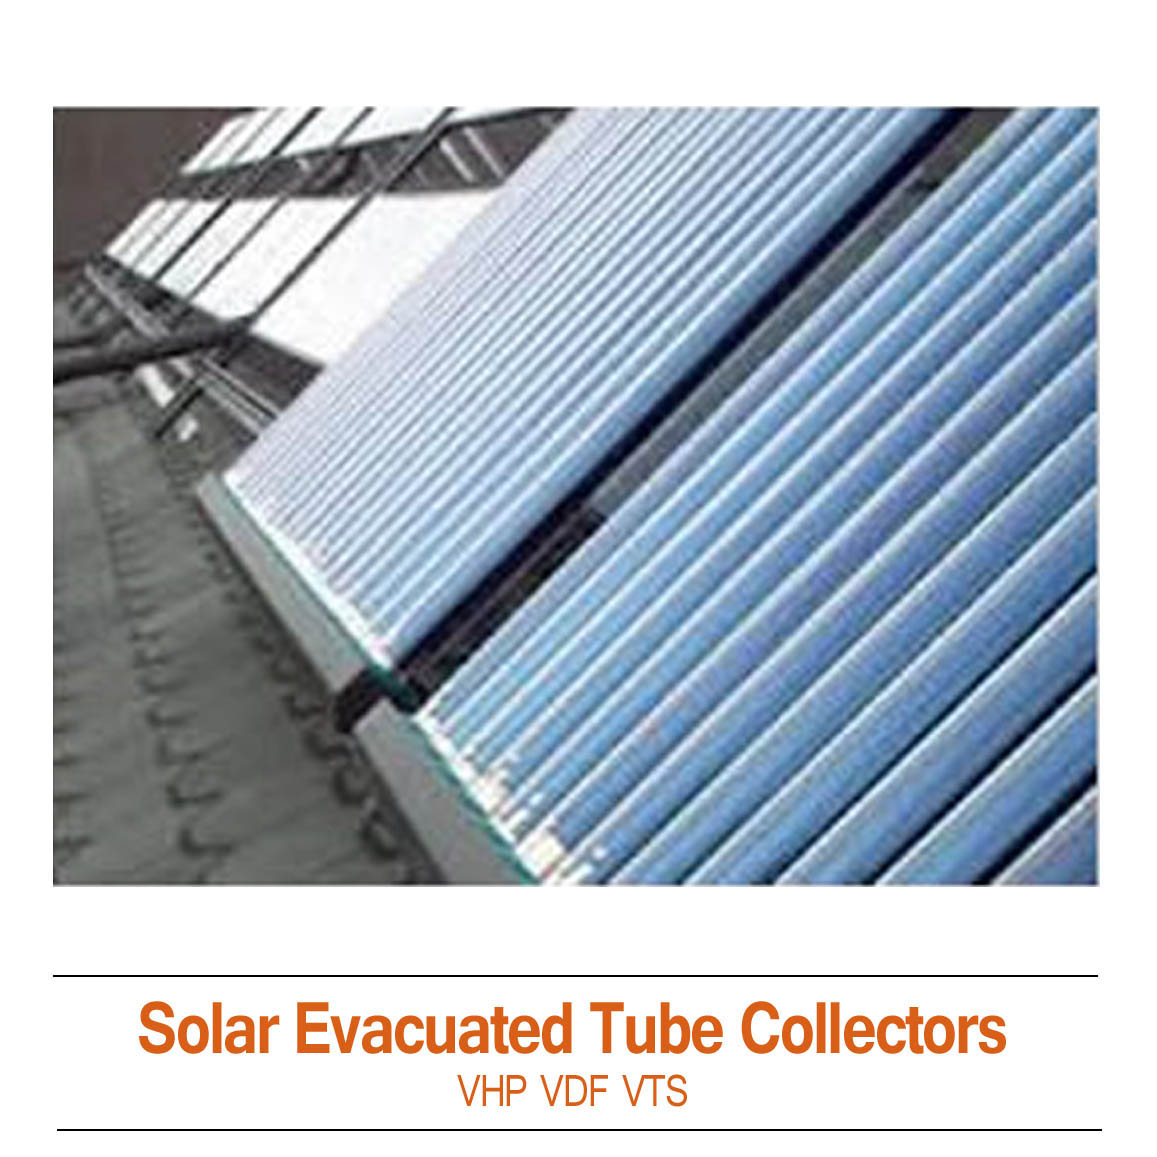 ThermoPower-VHP Heat Pipe Evacuated Tube Solar Collectors